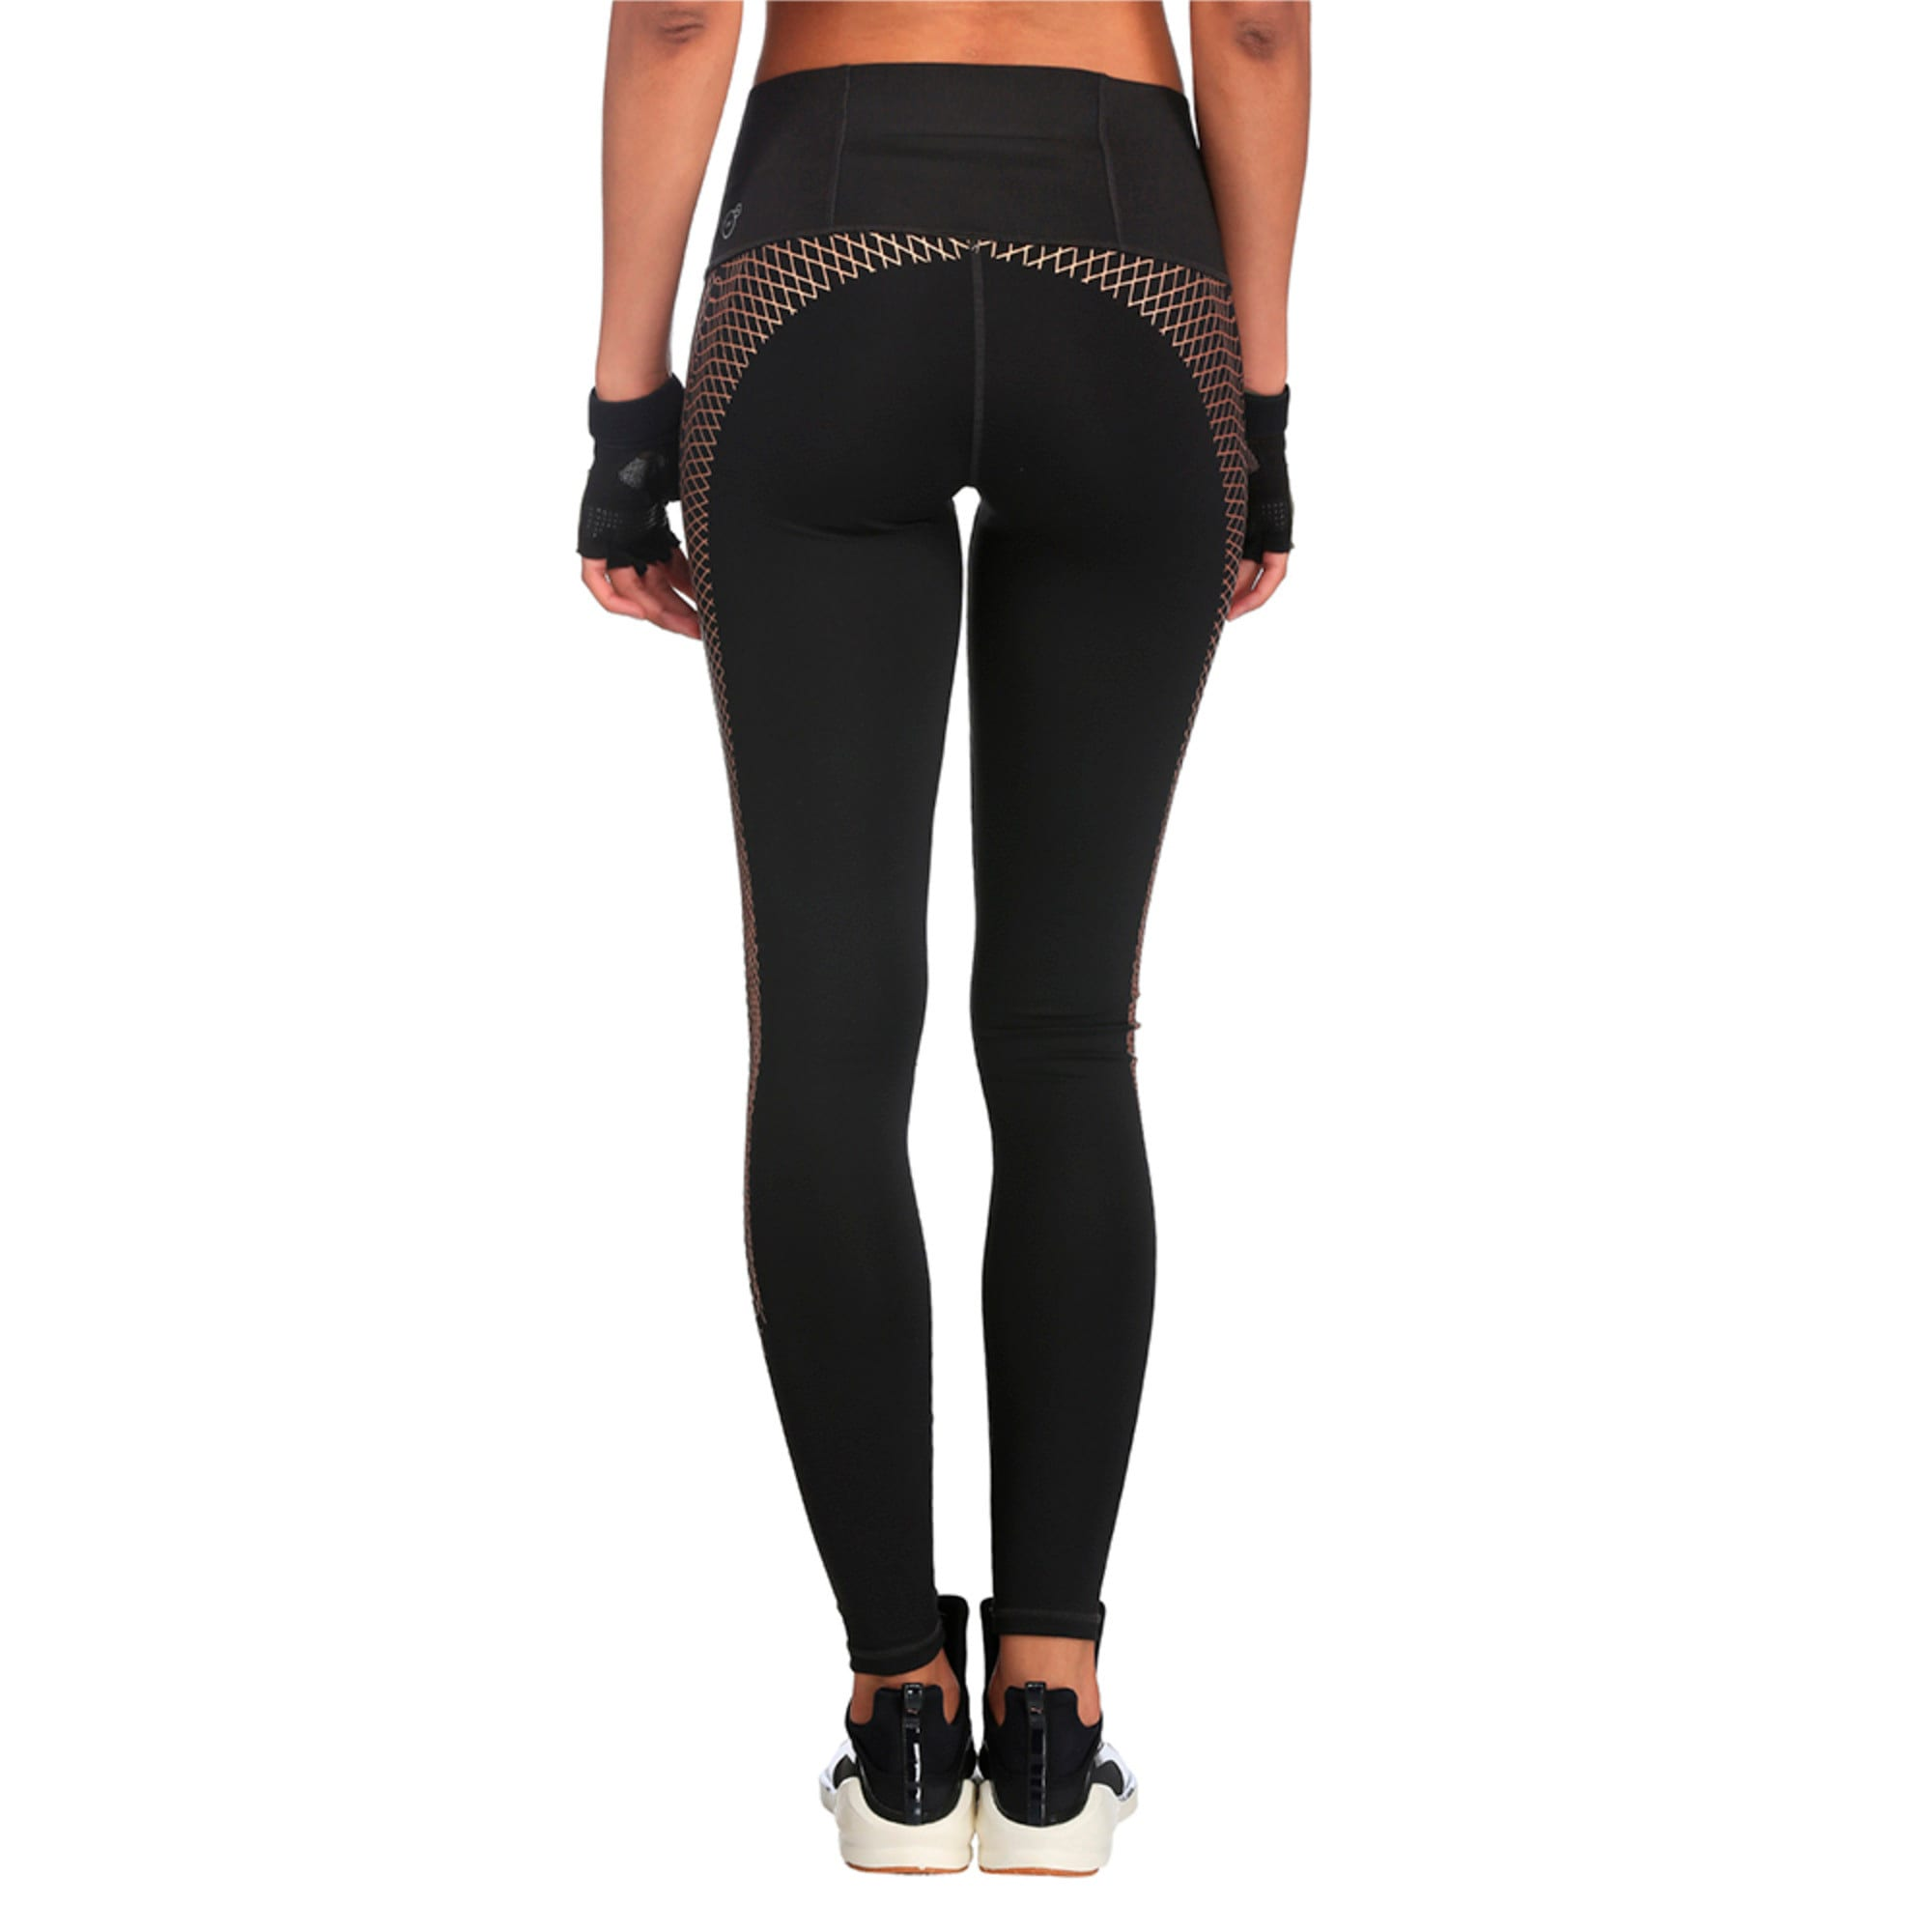 Thumbnail 3 of Active Training Women's Everyday Train Graphic Tights, Puma Black-Copper lacing prt, medium-IND